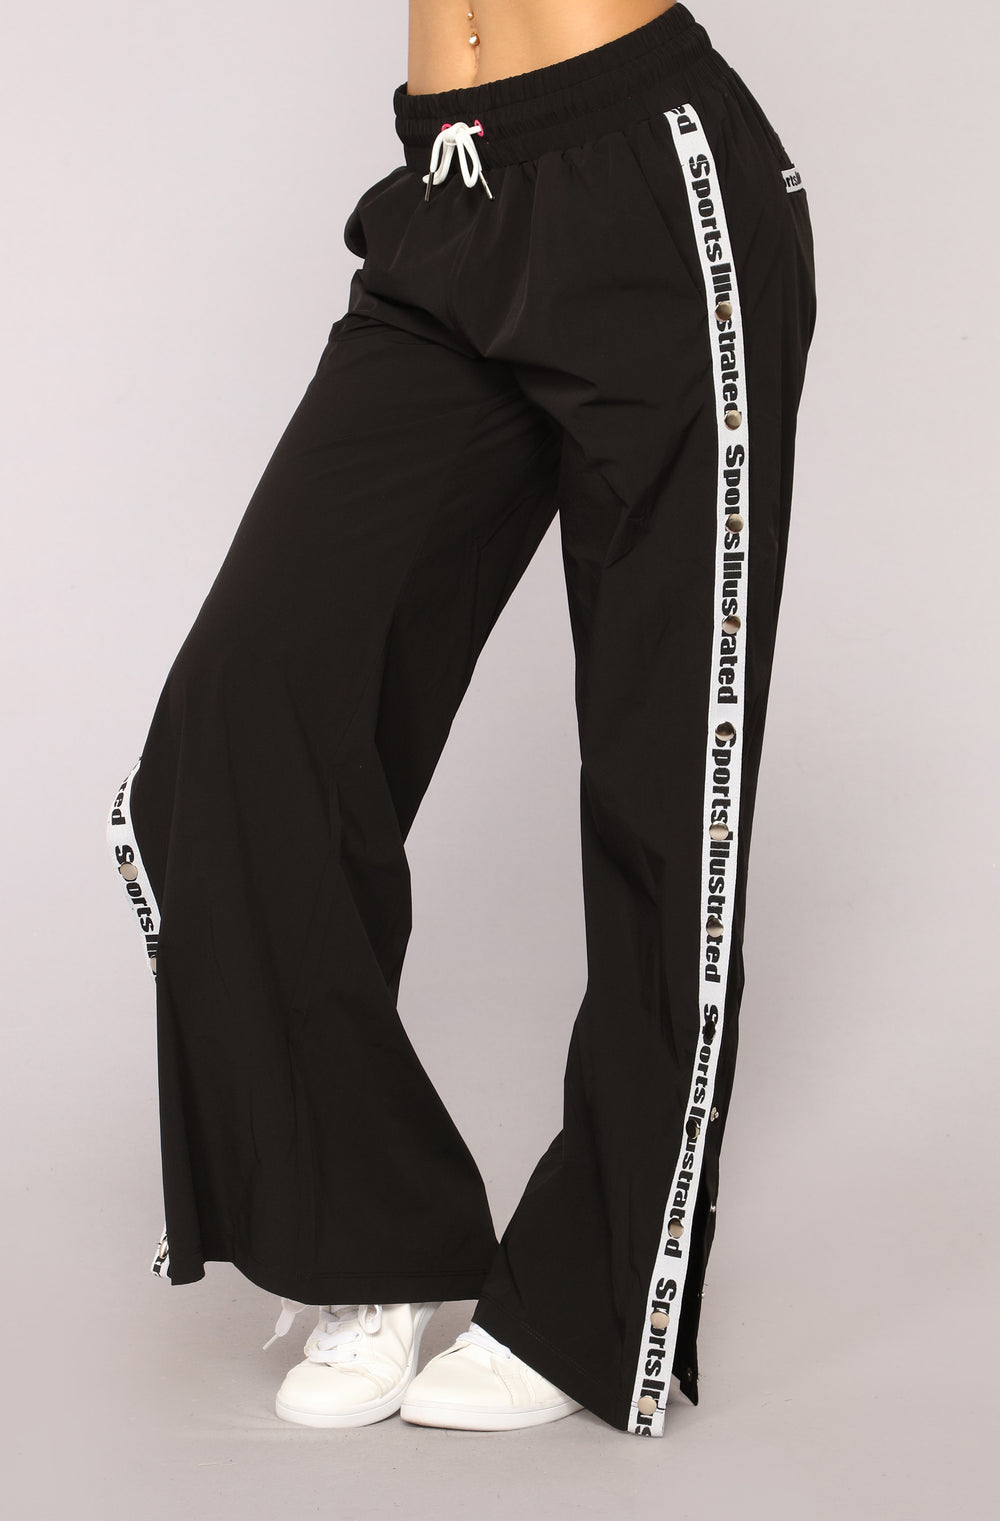 Sports Illustrated Snap Side Pants - Black